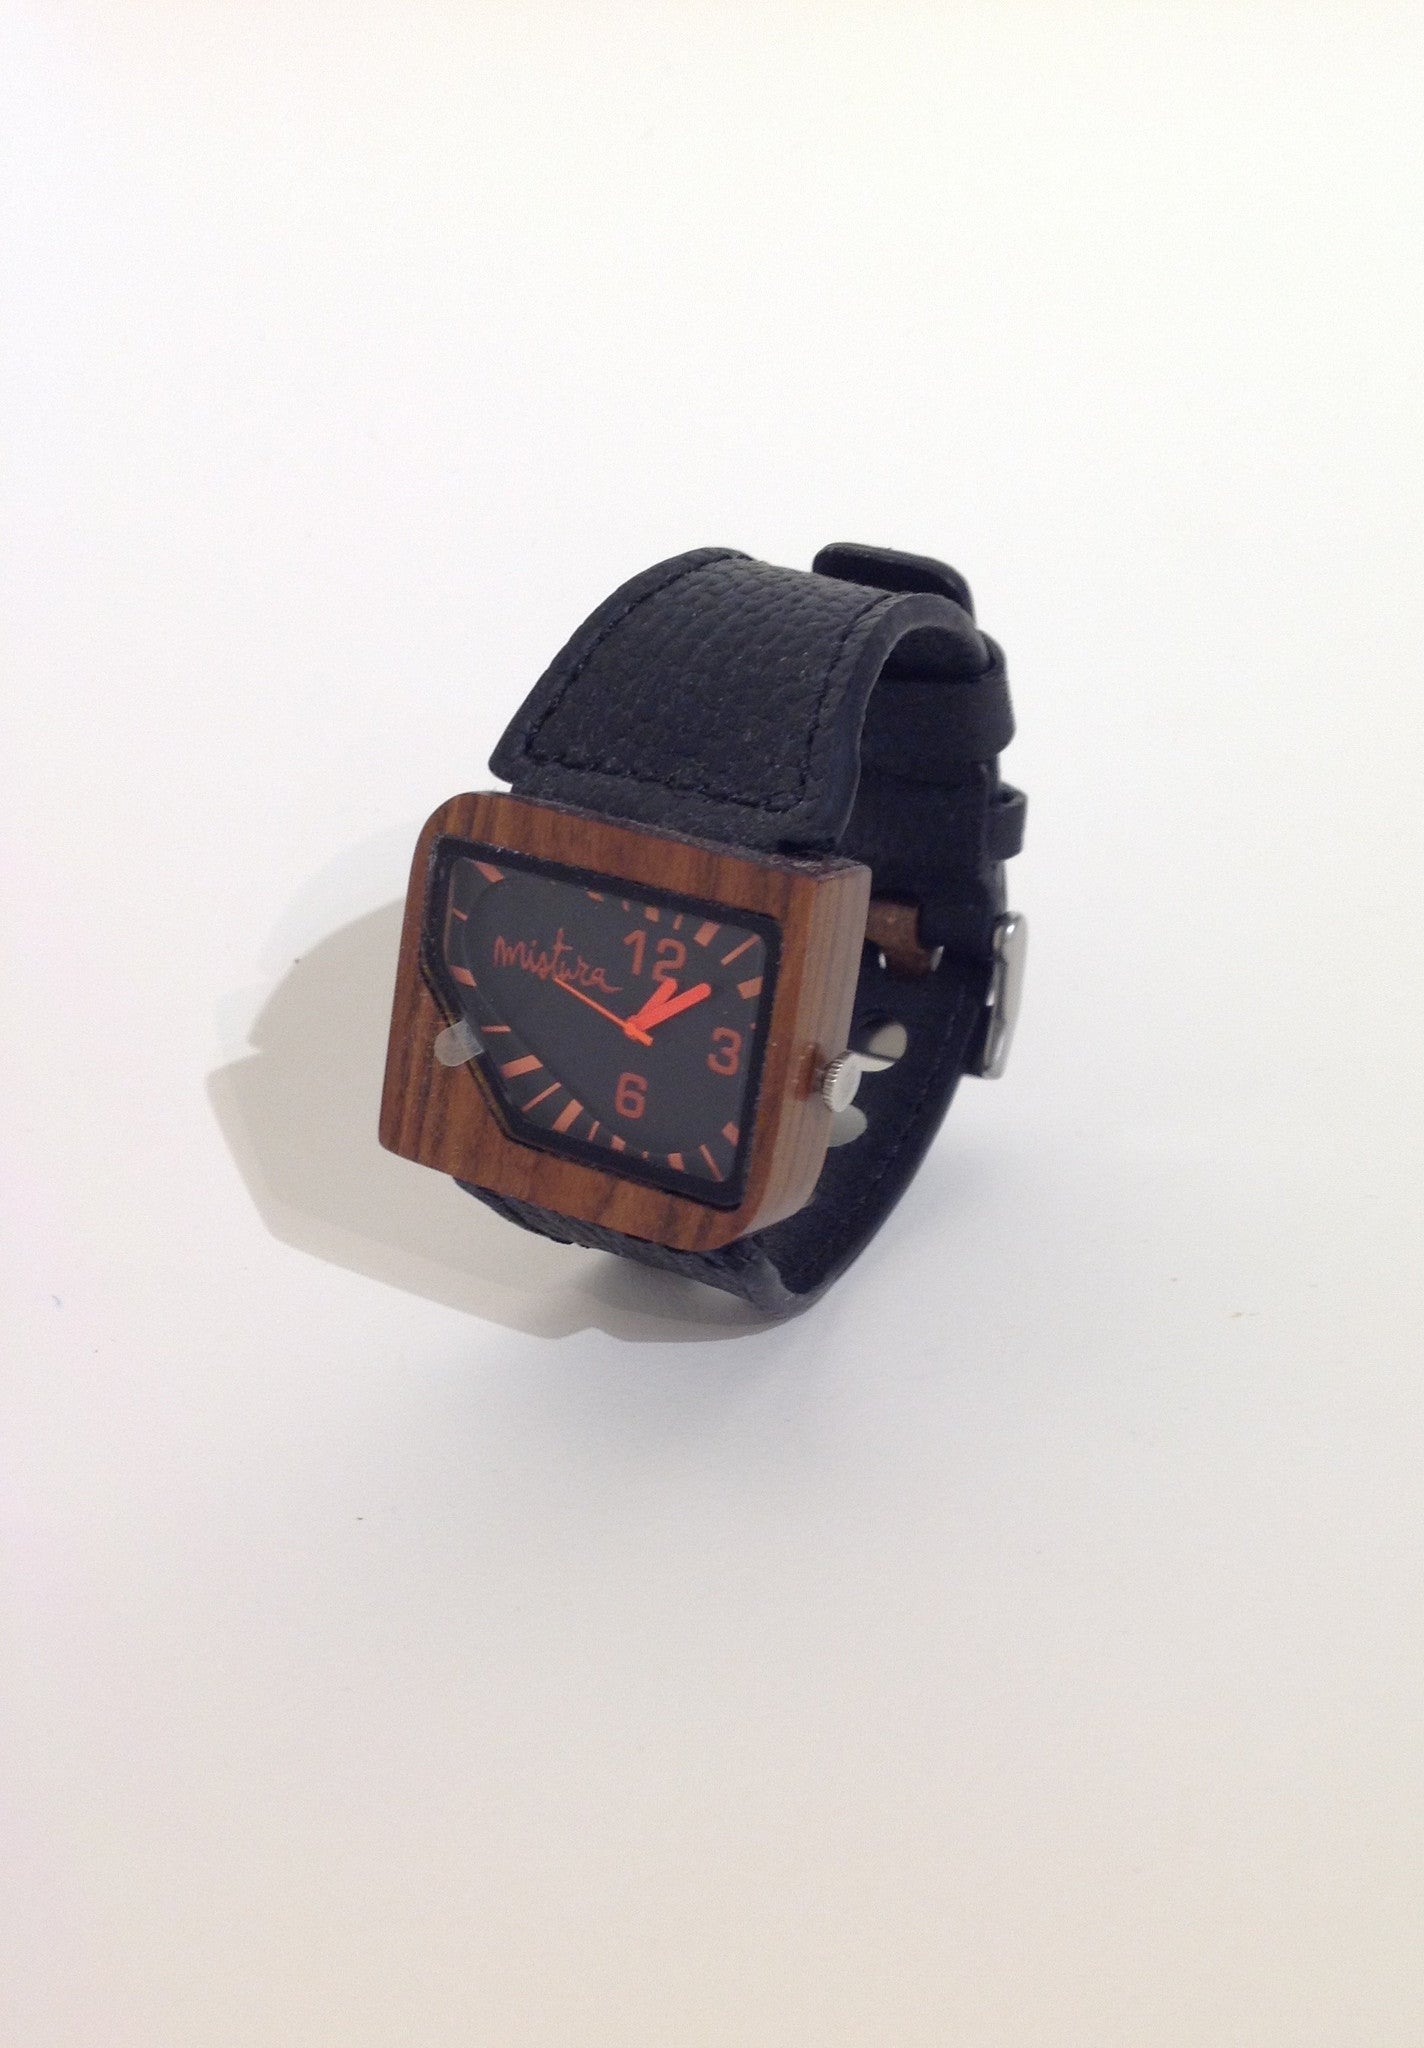 Avanti watch by Mistura